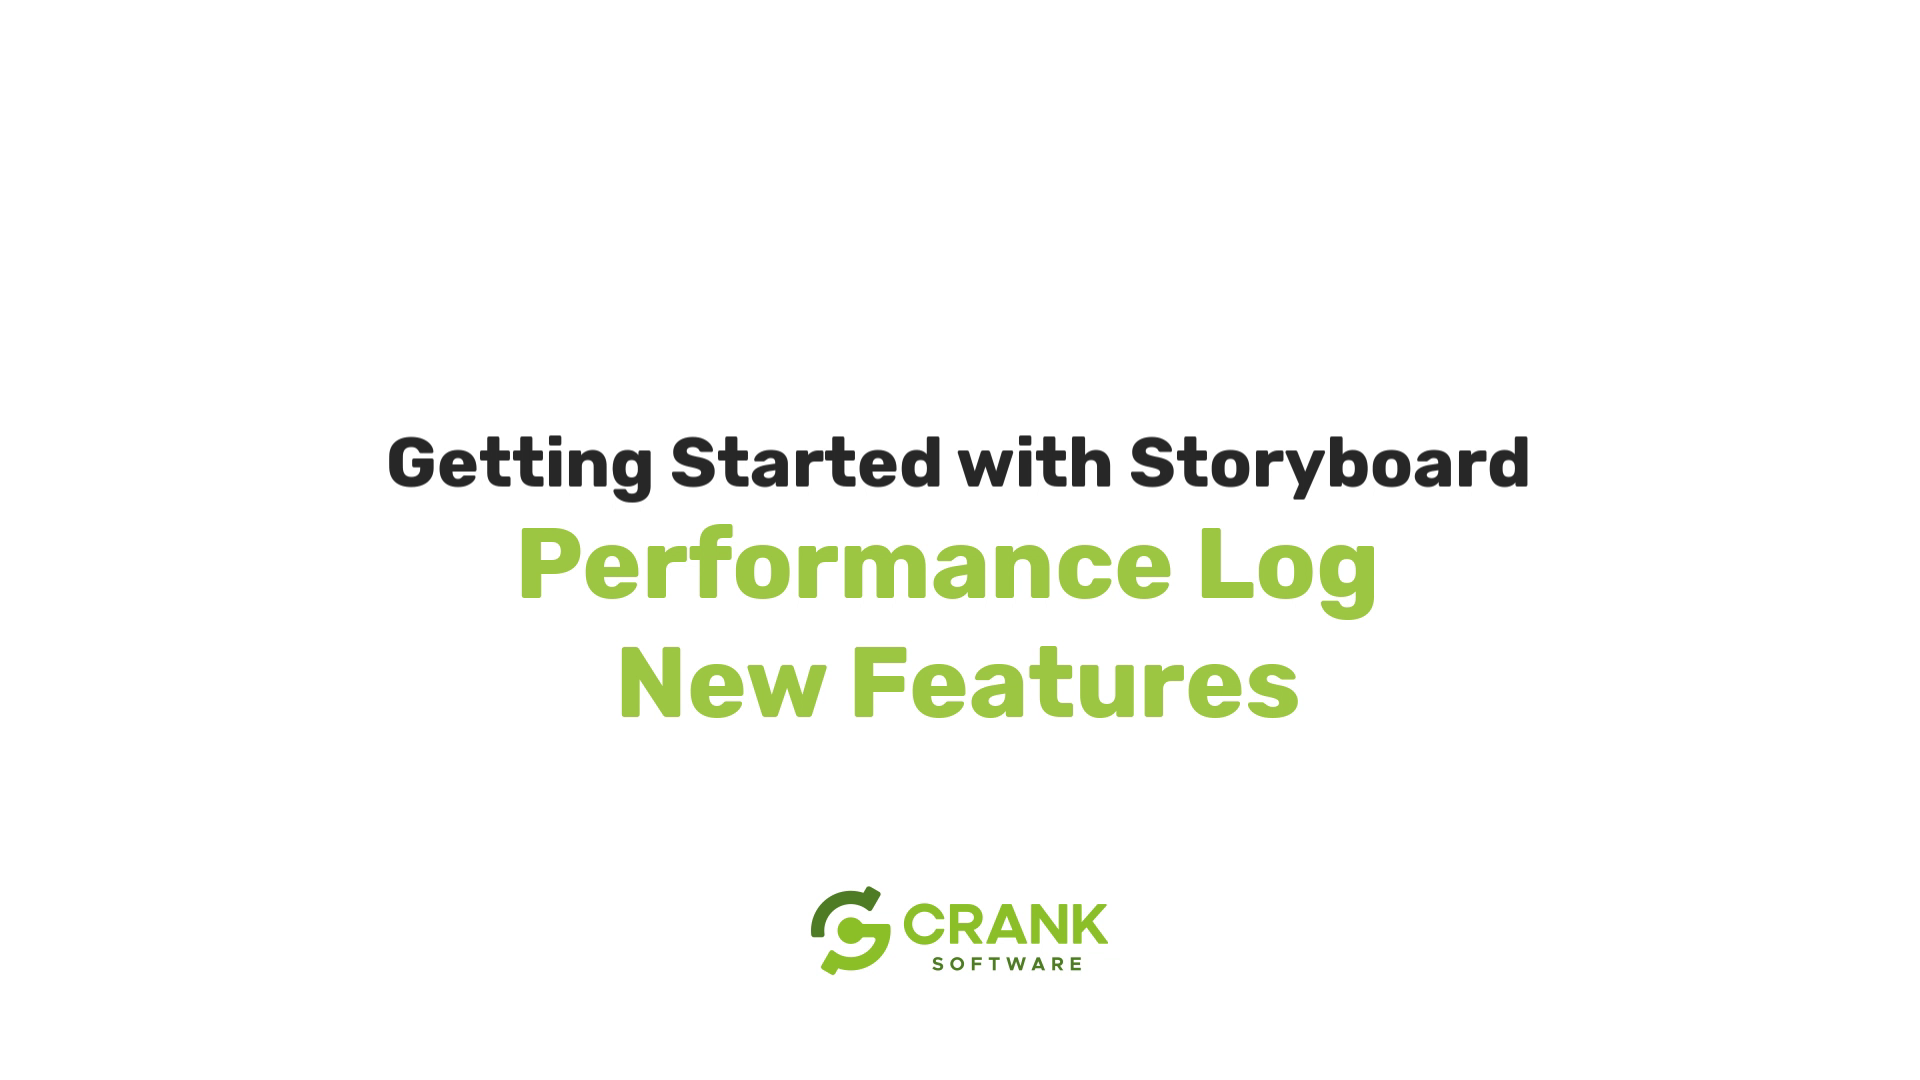 Crank-Software-Performance-Log-New-Features-6-2